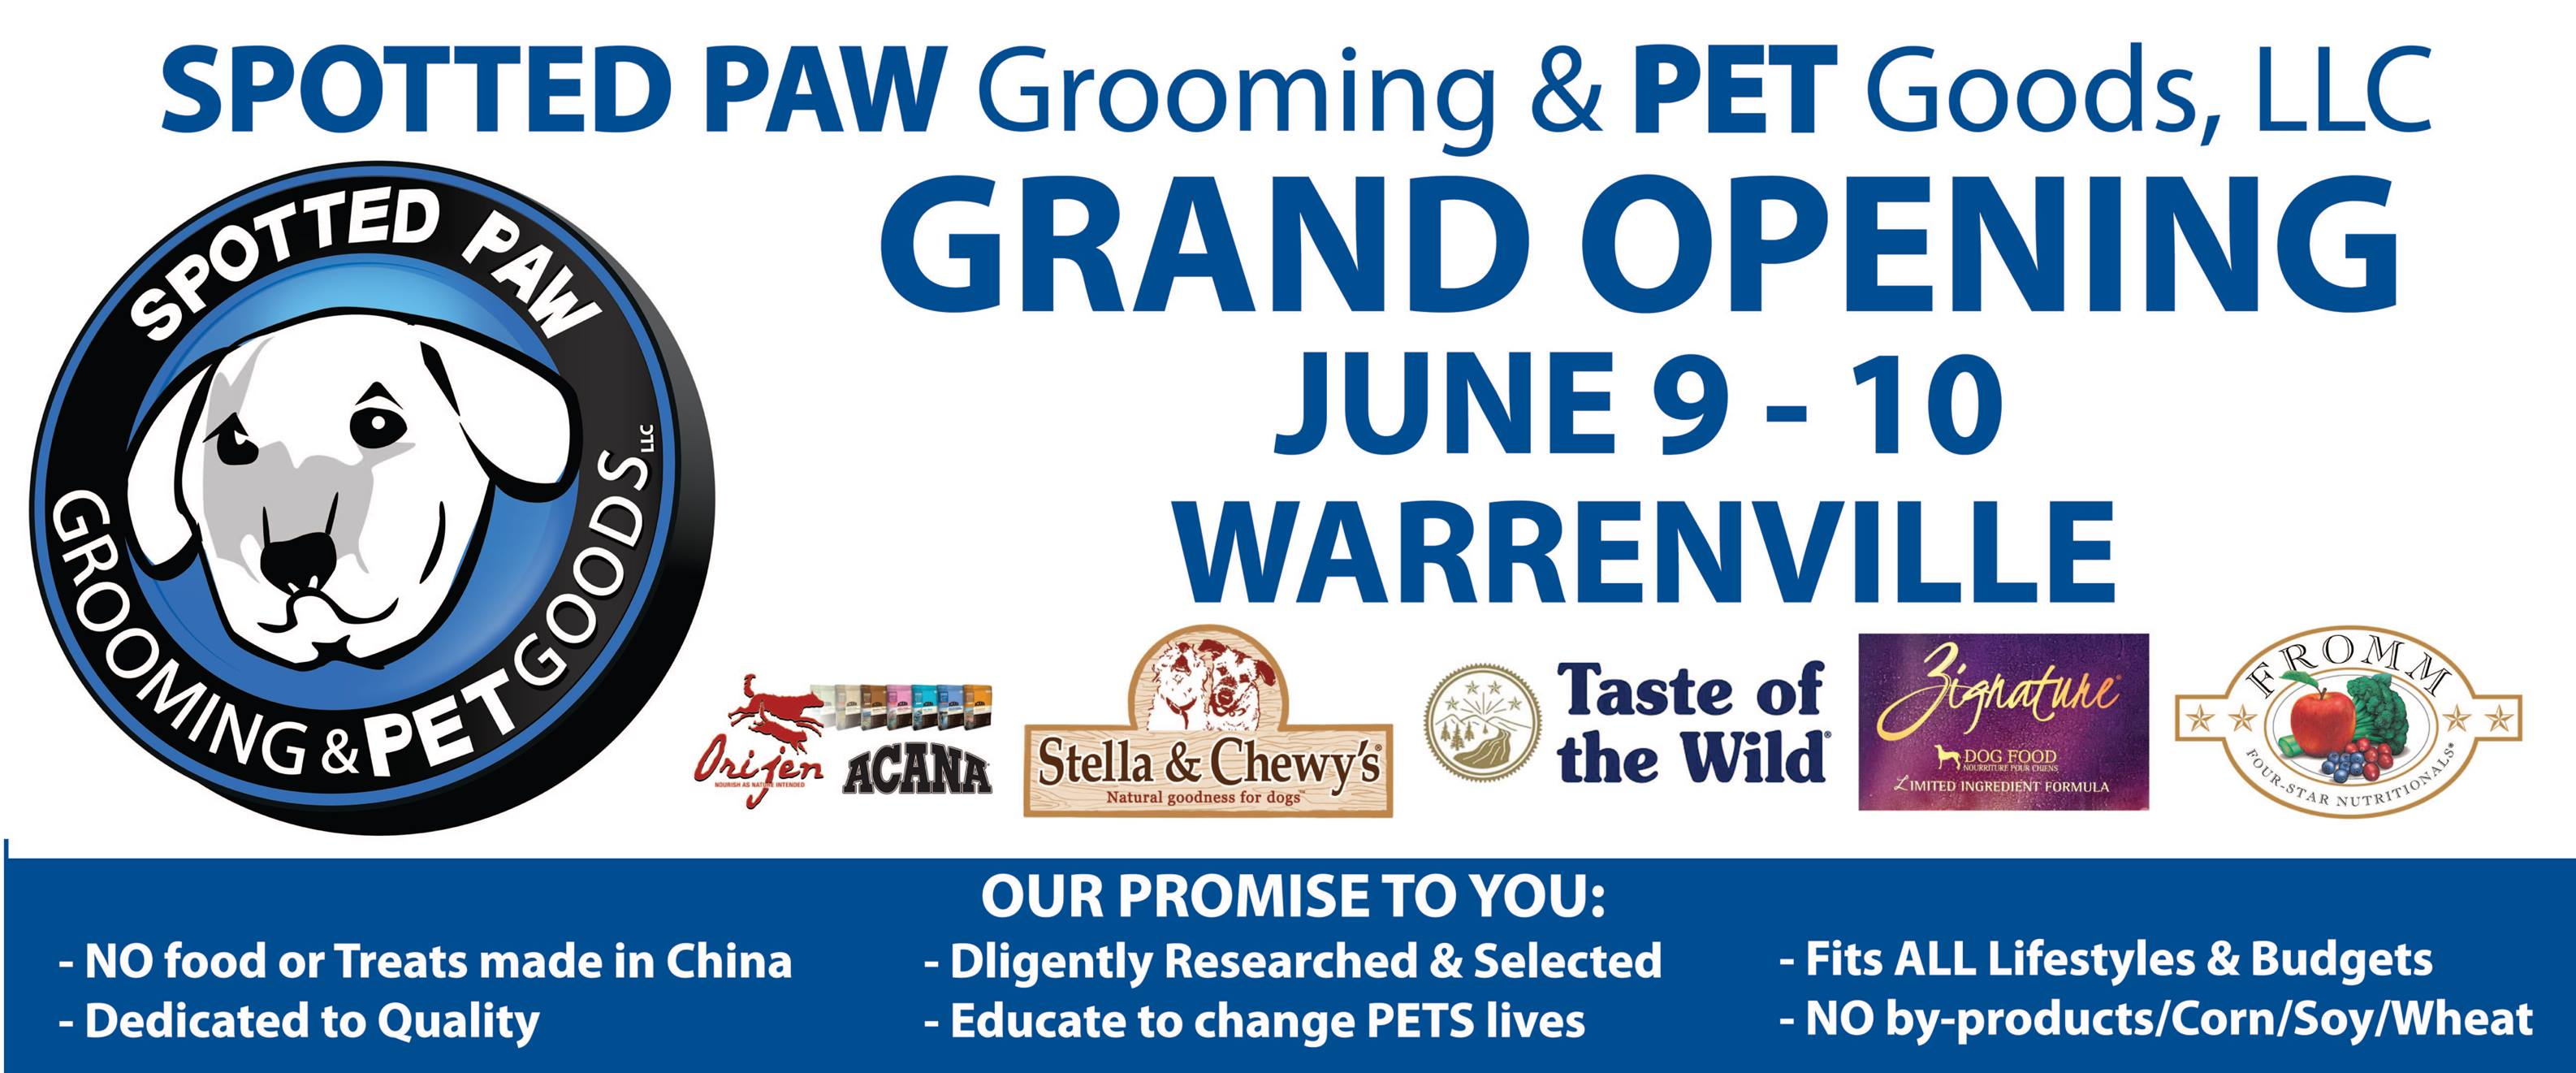 Warrenville Grand Opening